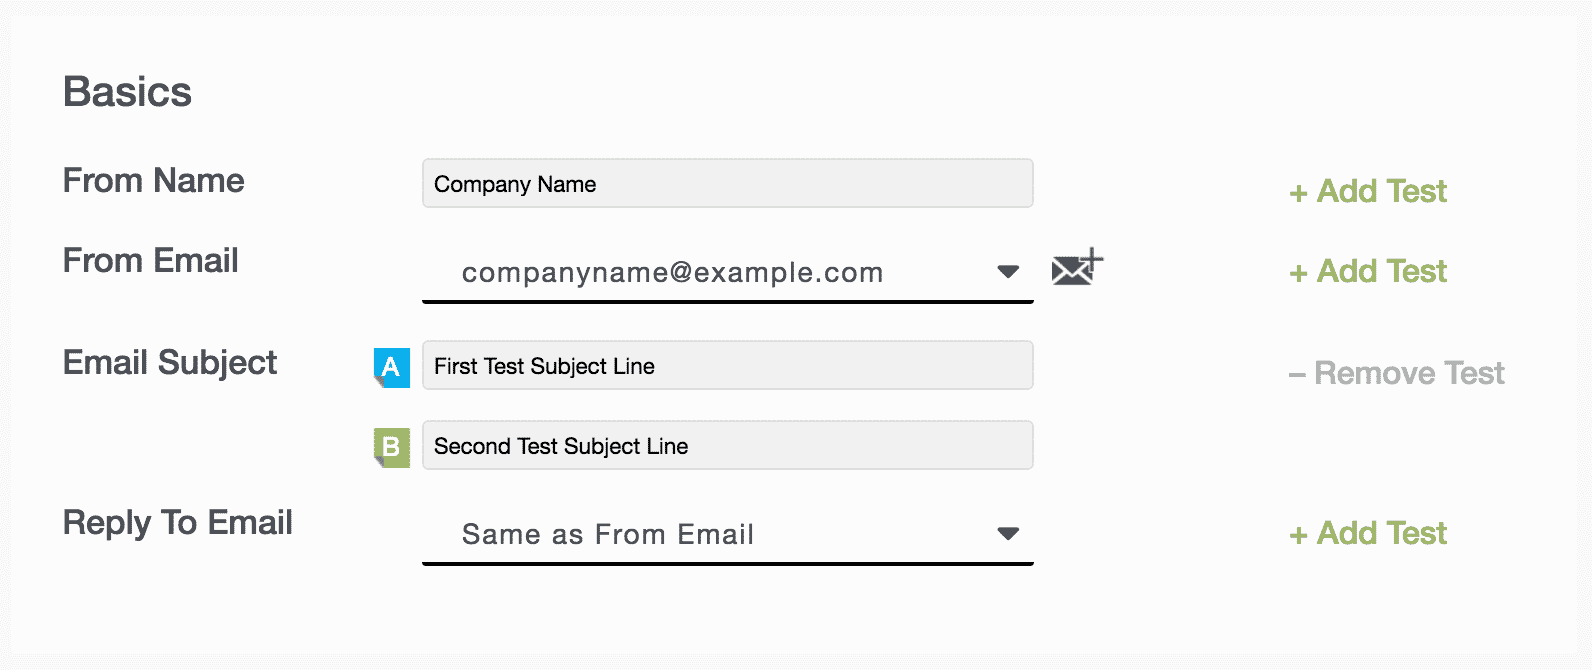 Campaigns 27 - Basics fields (from name, from email, email subject, reply-to email)